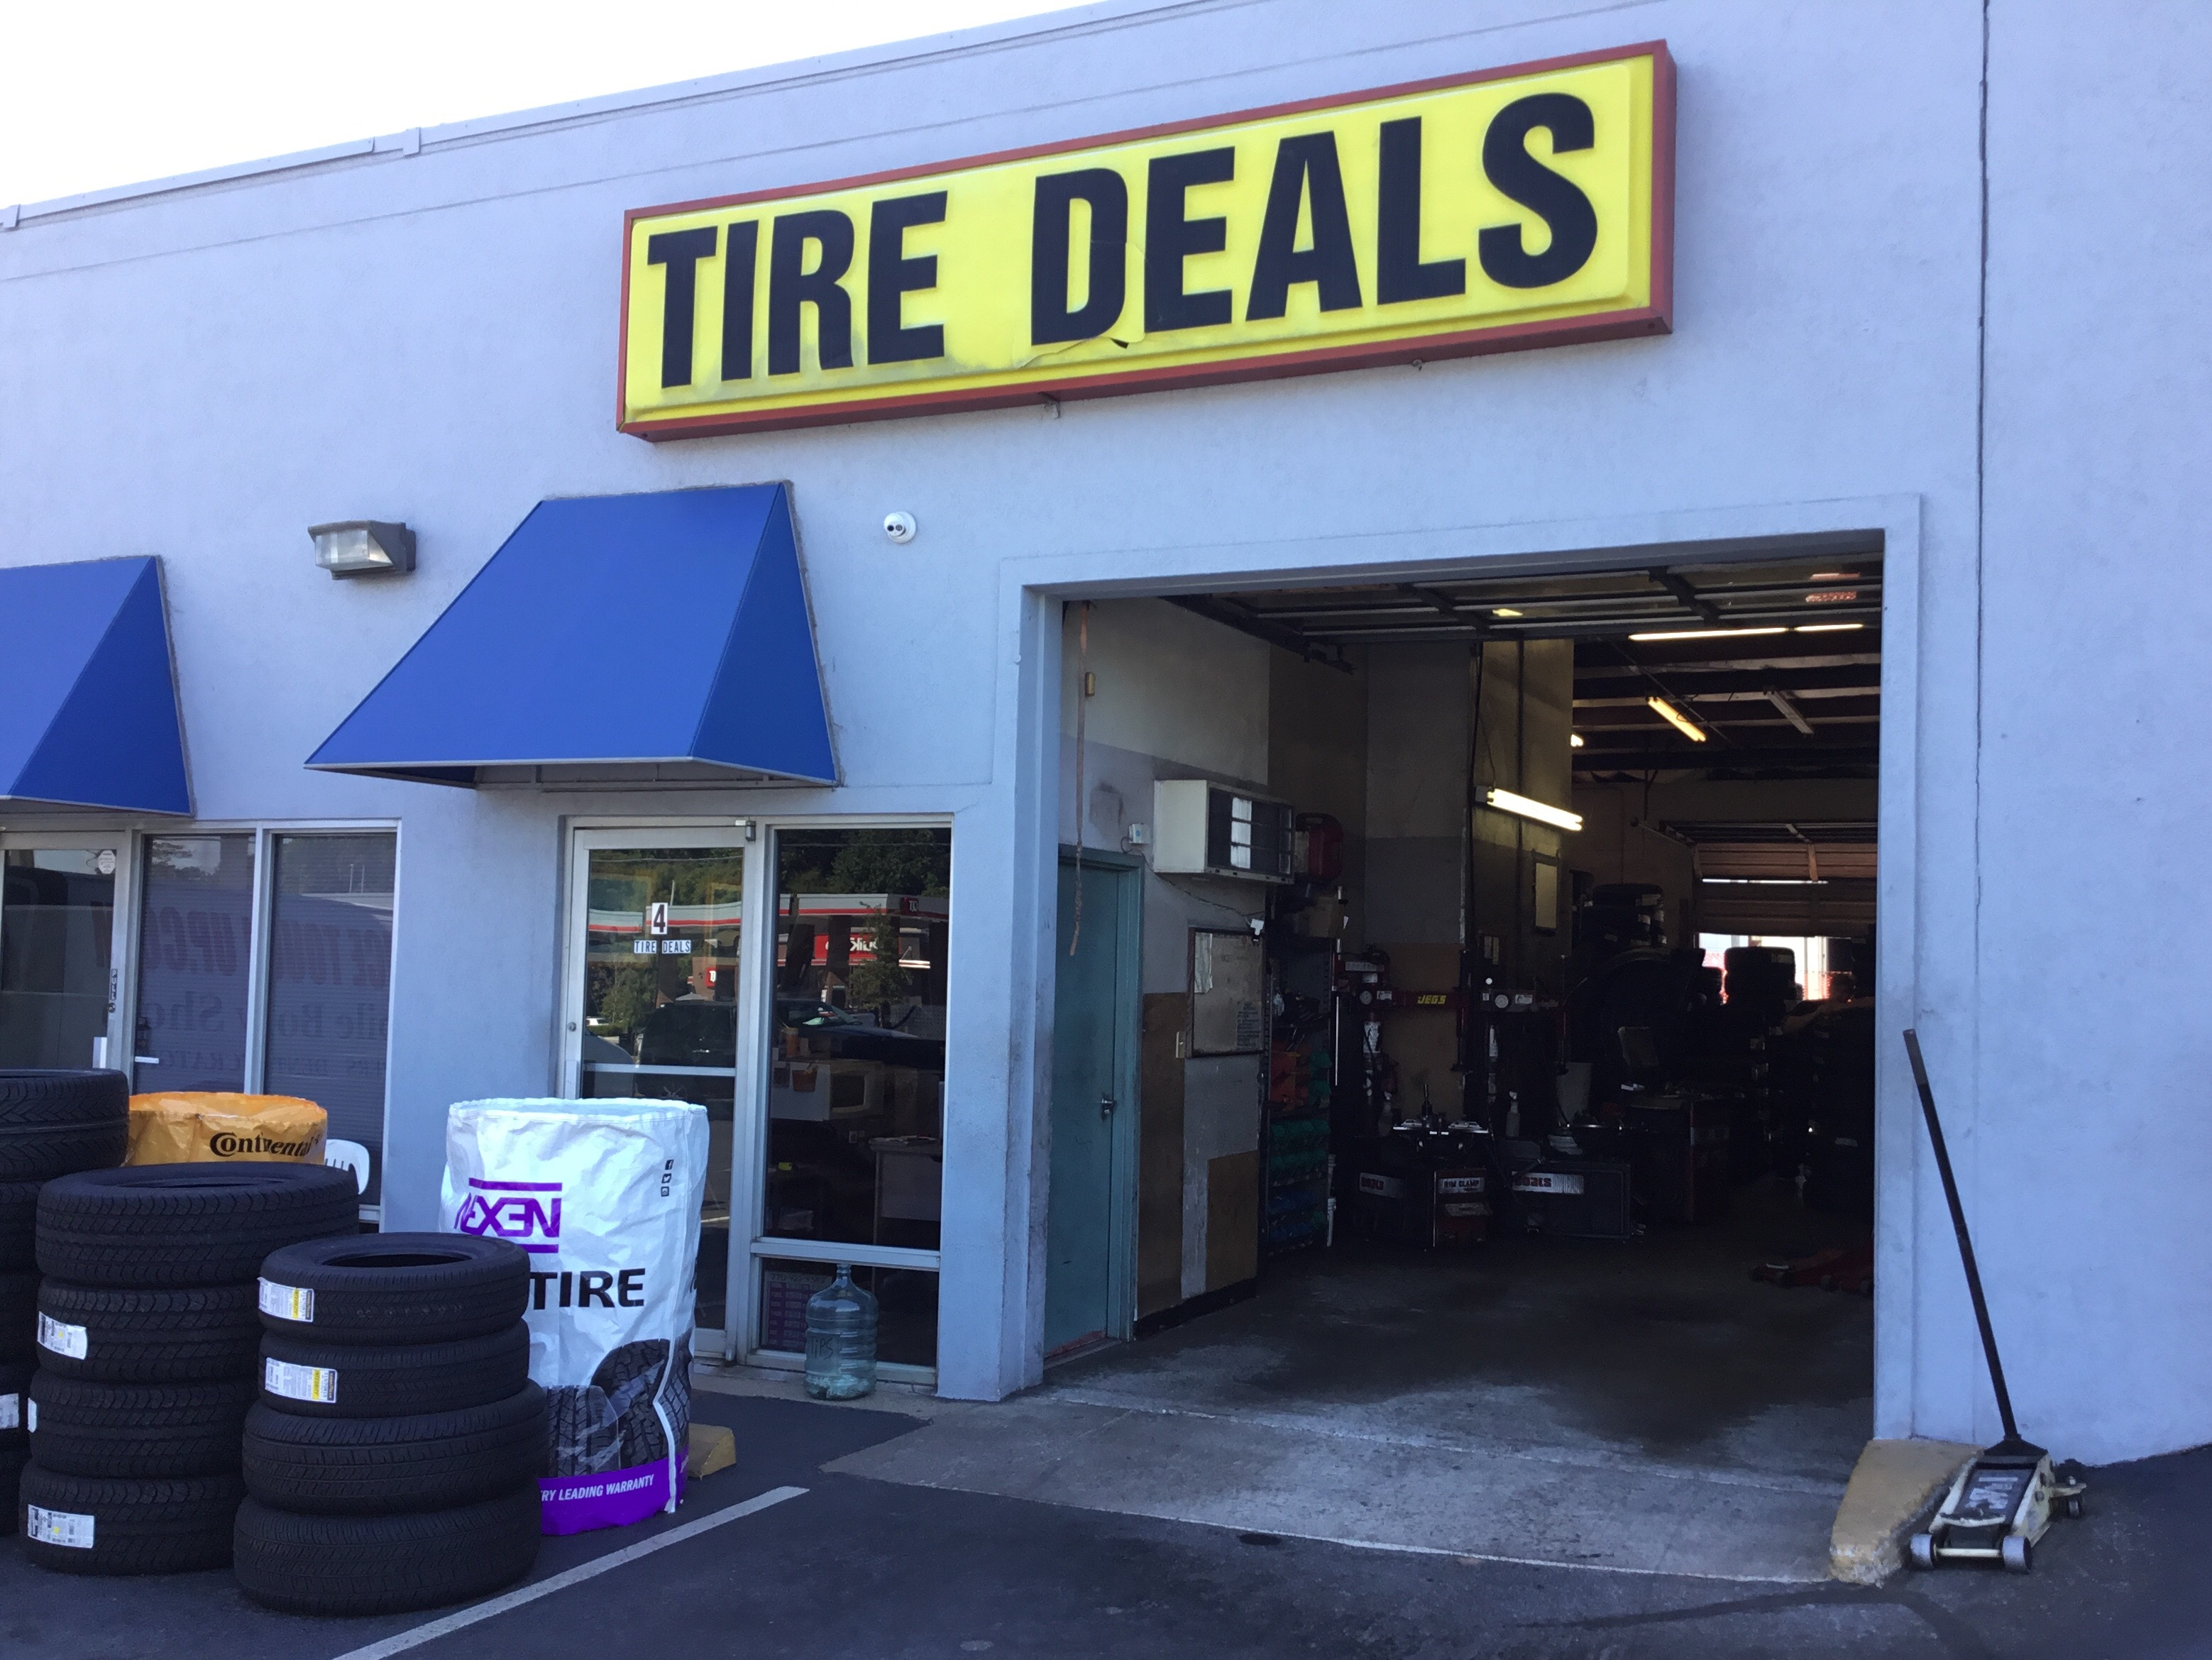 TIRE DEALS INC